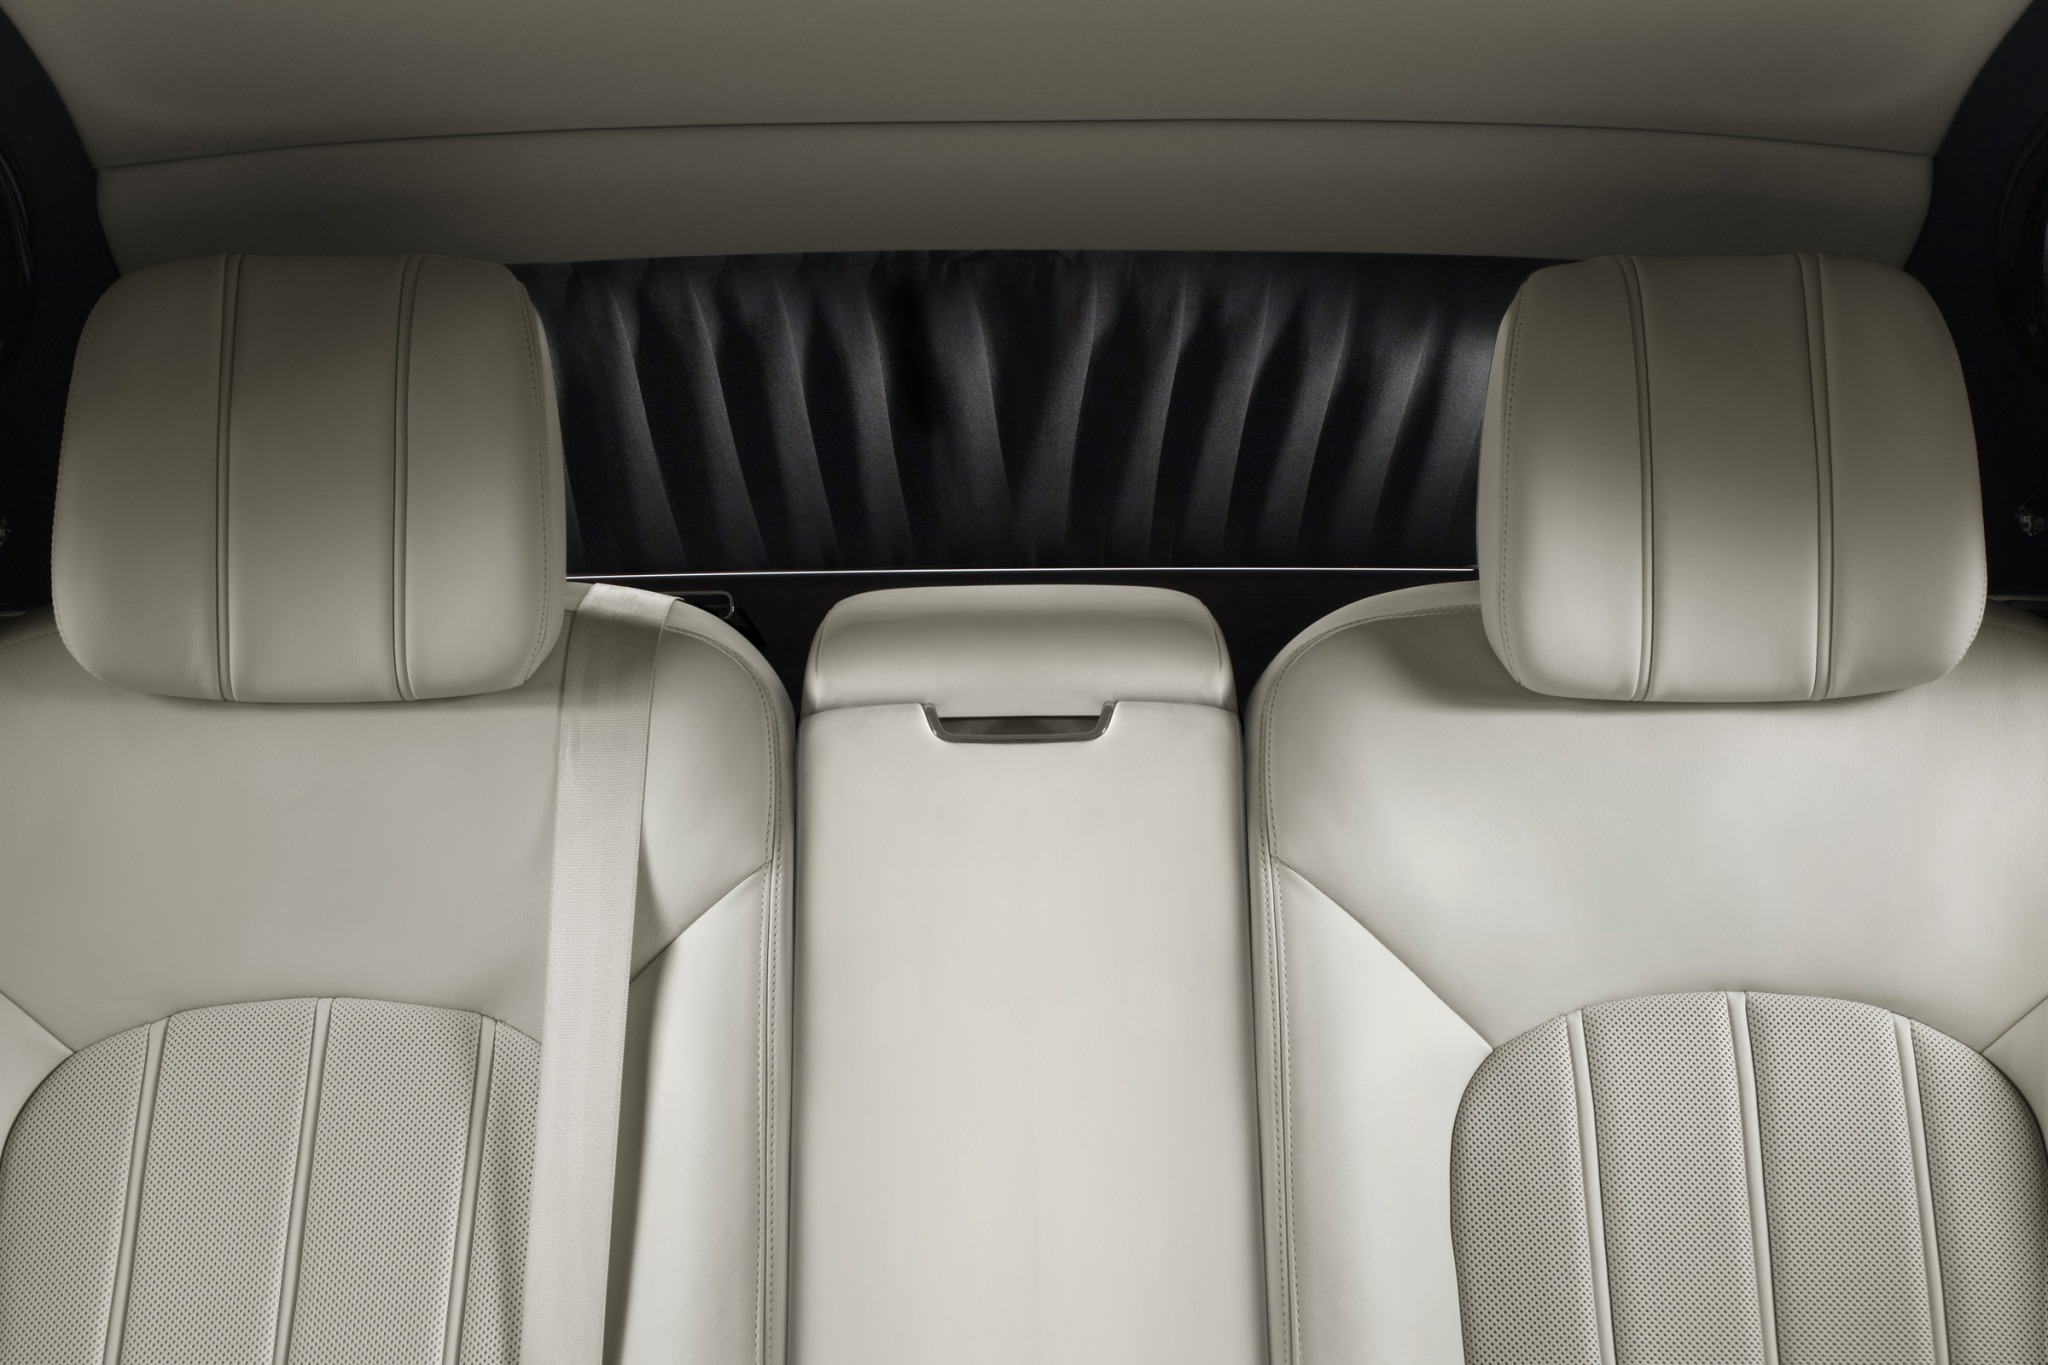 2013 Bentley Mulsanne Sed interior #8